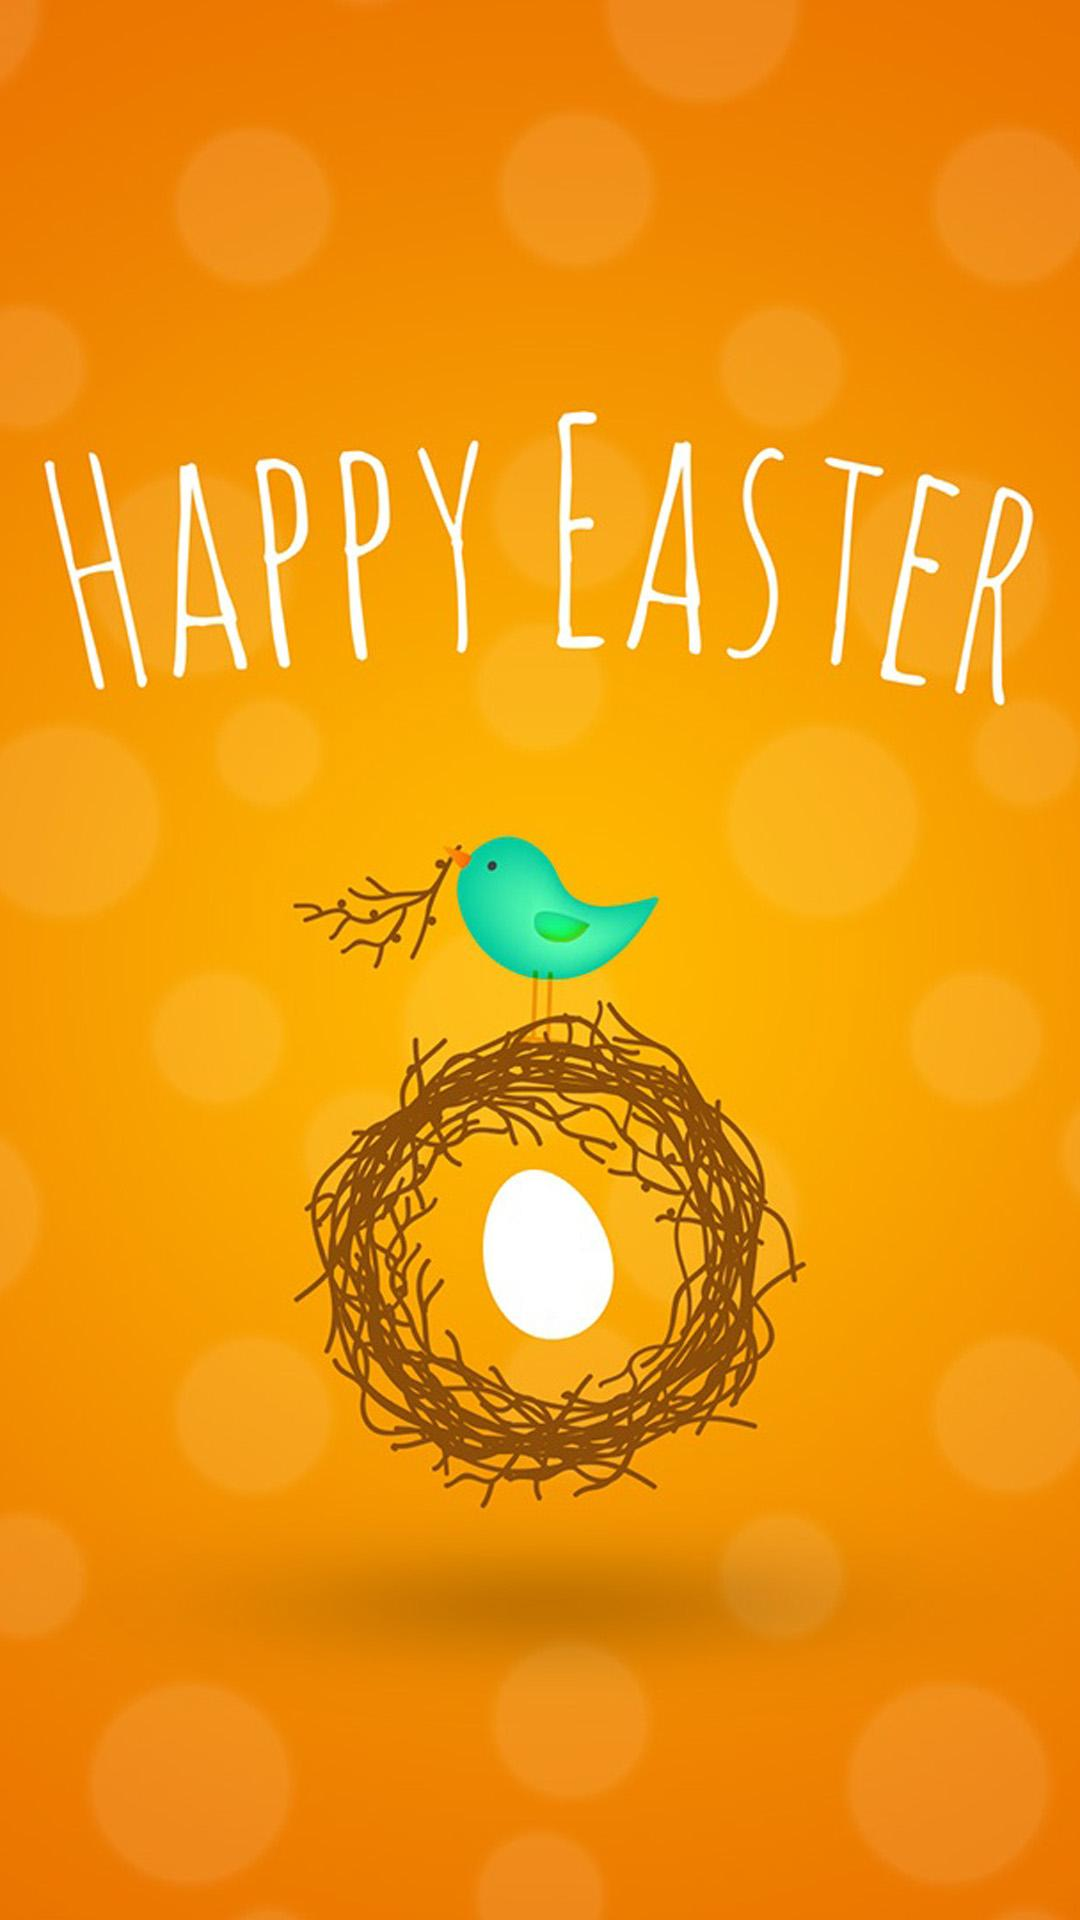 Happy Easter Cookoo Nest | Mobile Wallpaper | Phone Background